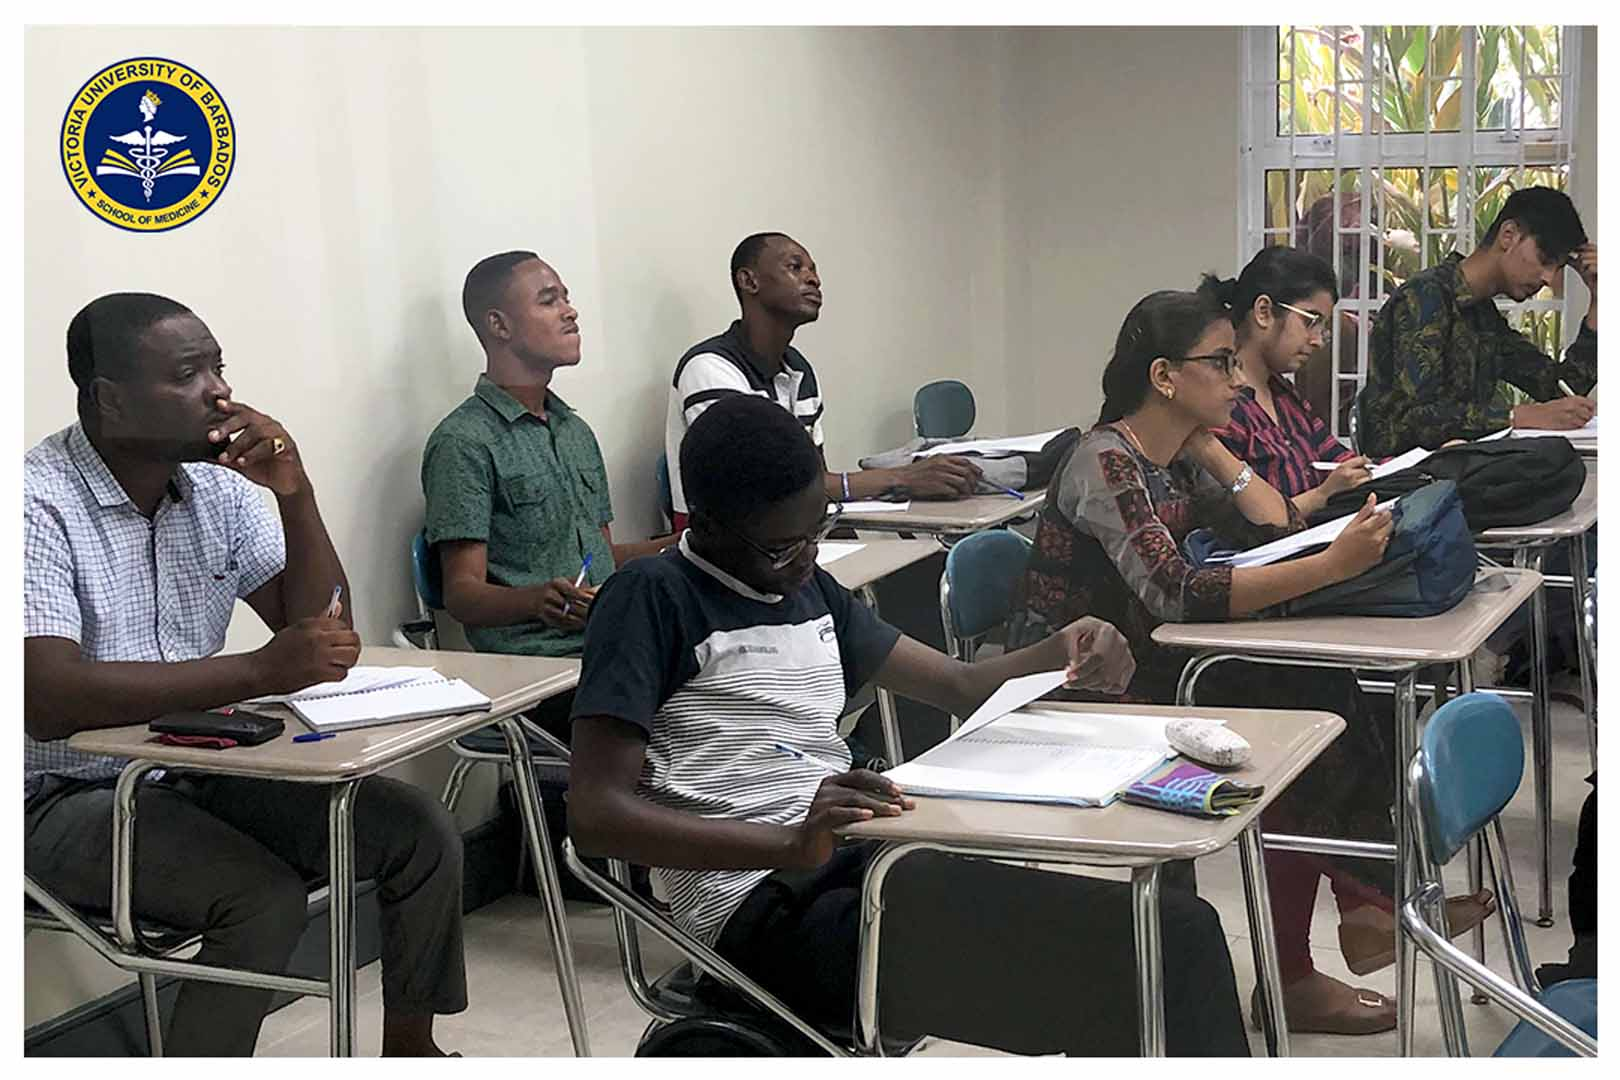 Victoria University of Barbados - MBBS in Barbados - MD Program Nov 2019 - 04